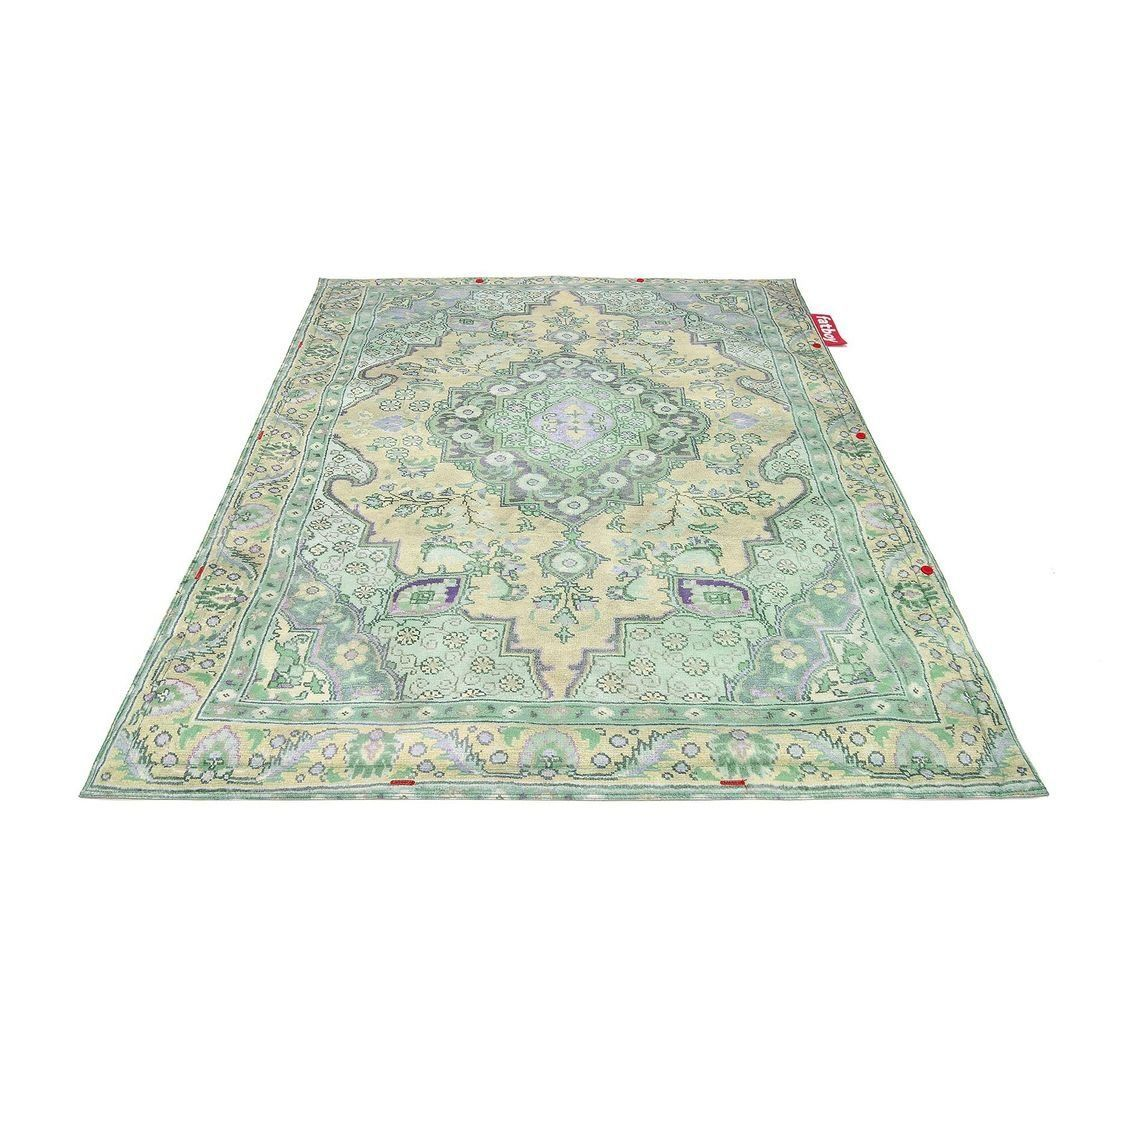 Carpet Teppich Fatboy Non Flying Carpet Teppich Ambientedirect